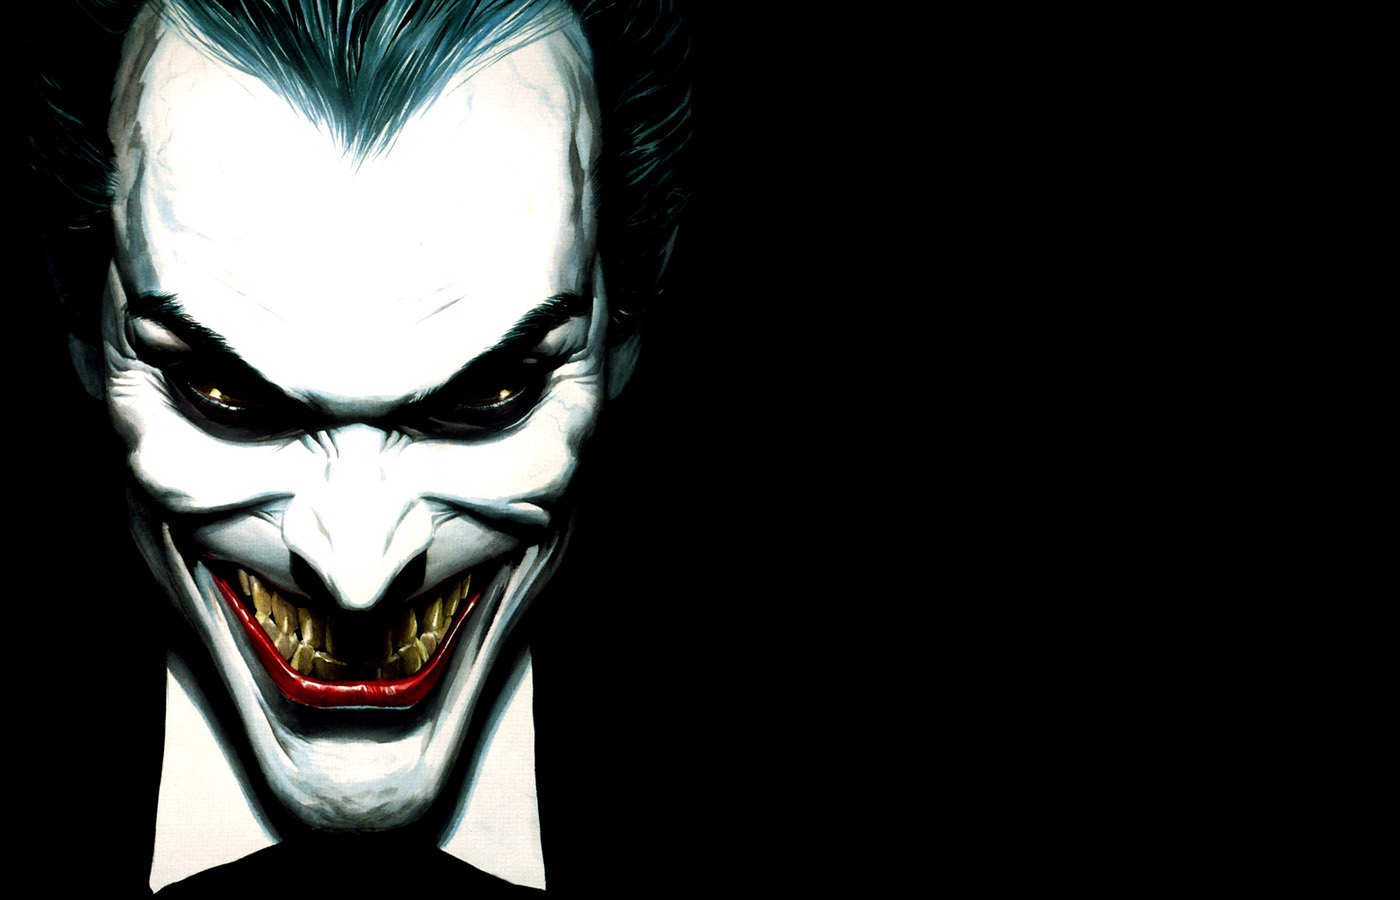 http://2.bp.blogspot.com/-31bNsI8fXwQ/Tmfb3hy12bI/AAAAAAAACng/U8-P19f6FG8/s1600/batman_black_the_joker_desktop_1400x900_wallpaper-63056.jpg